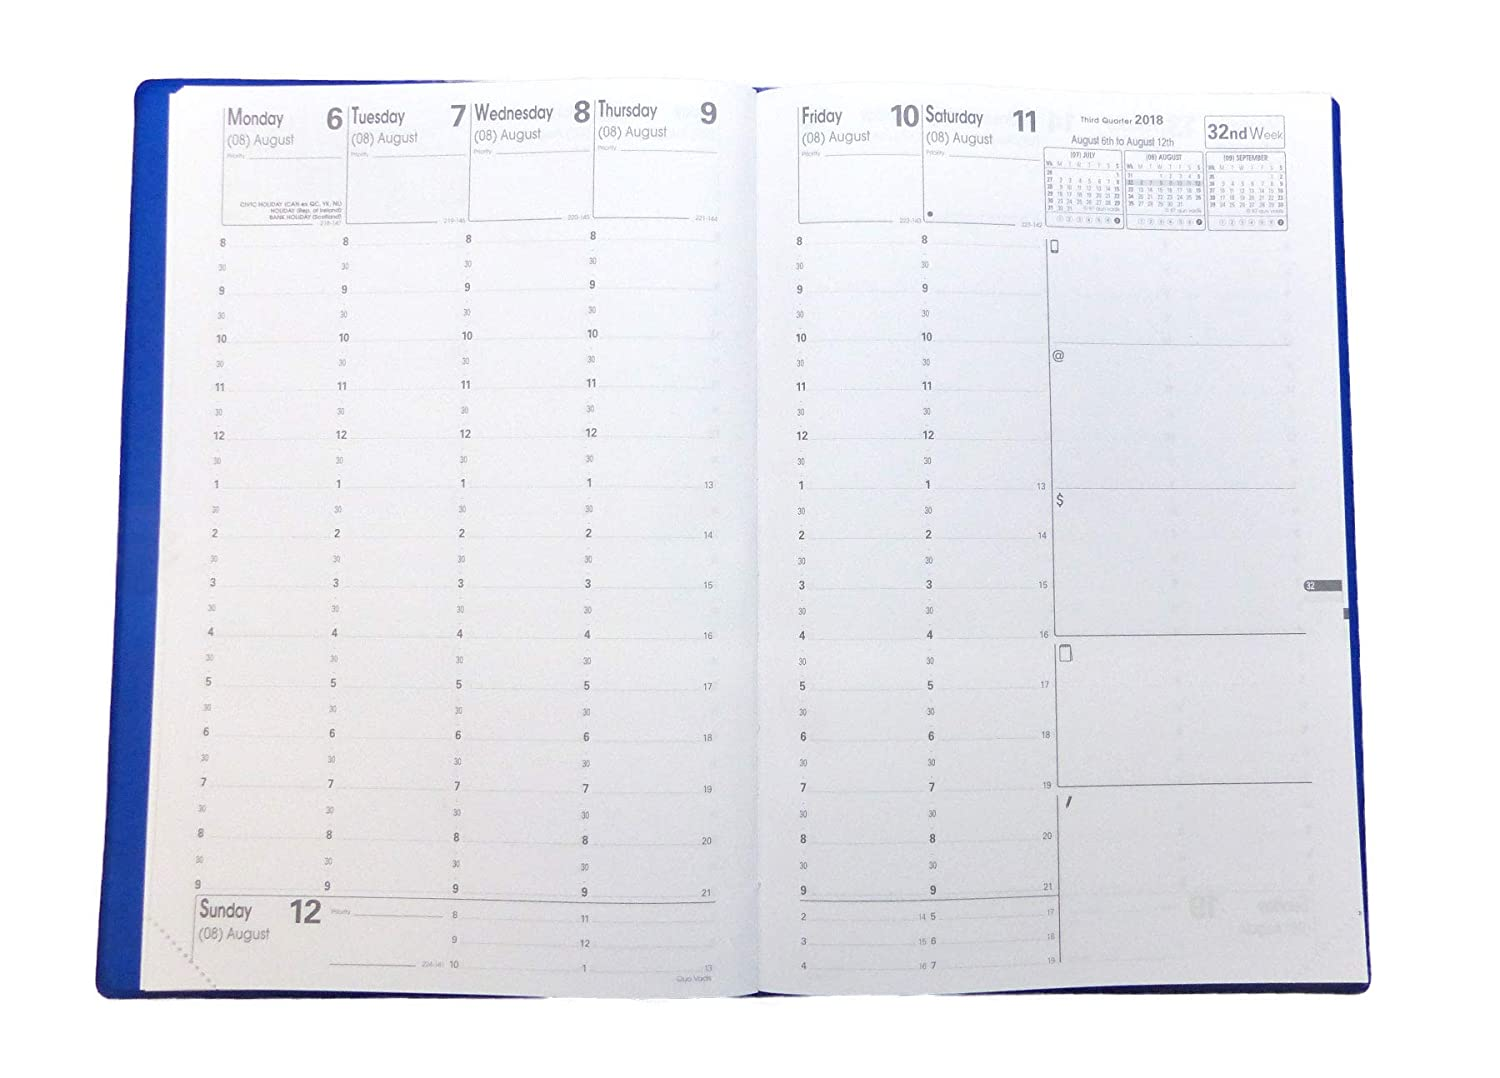 Quo Vadis Academic Minister - Weekly/Monthly Planner - Compact - 13 Months, July to July - 6 1/4 x 9 3/8